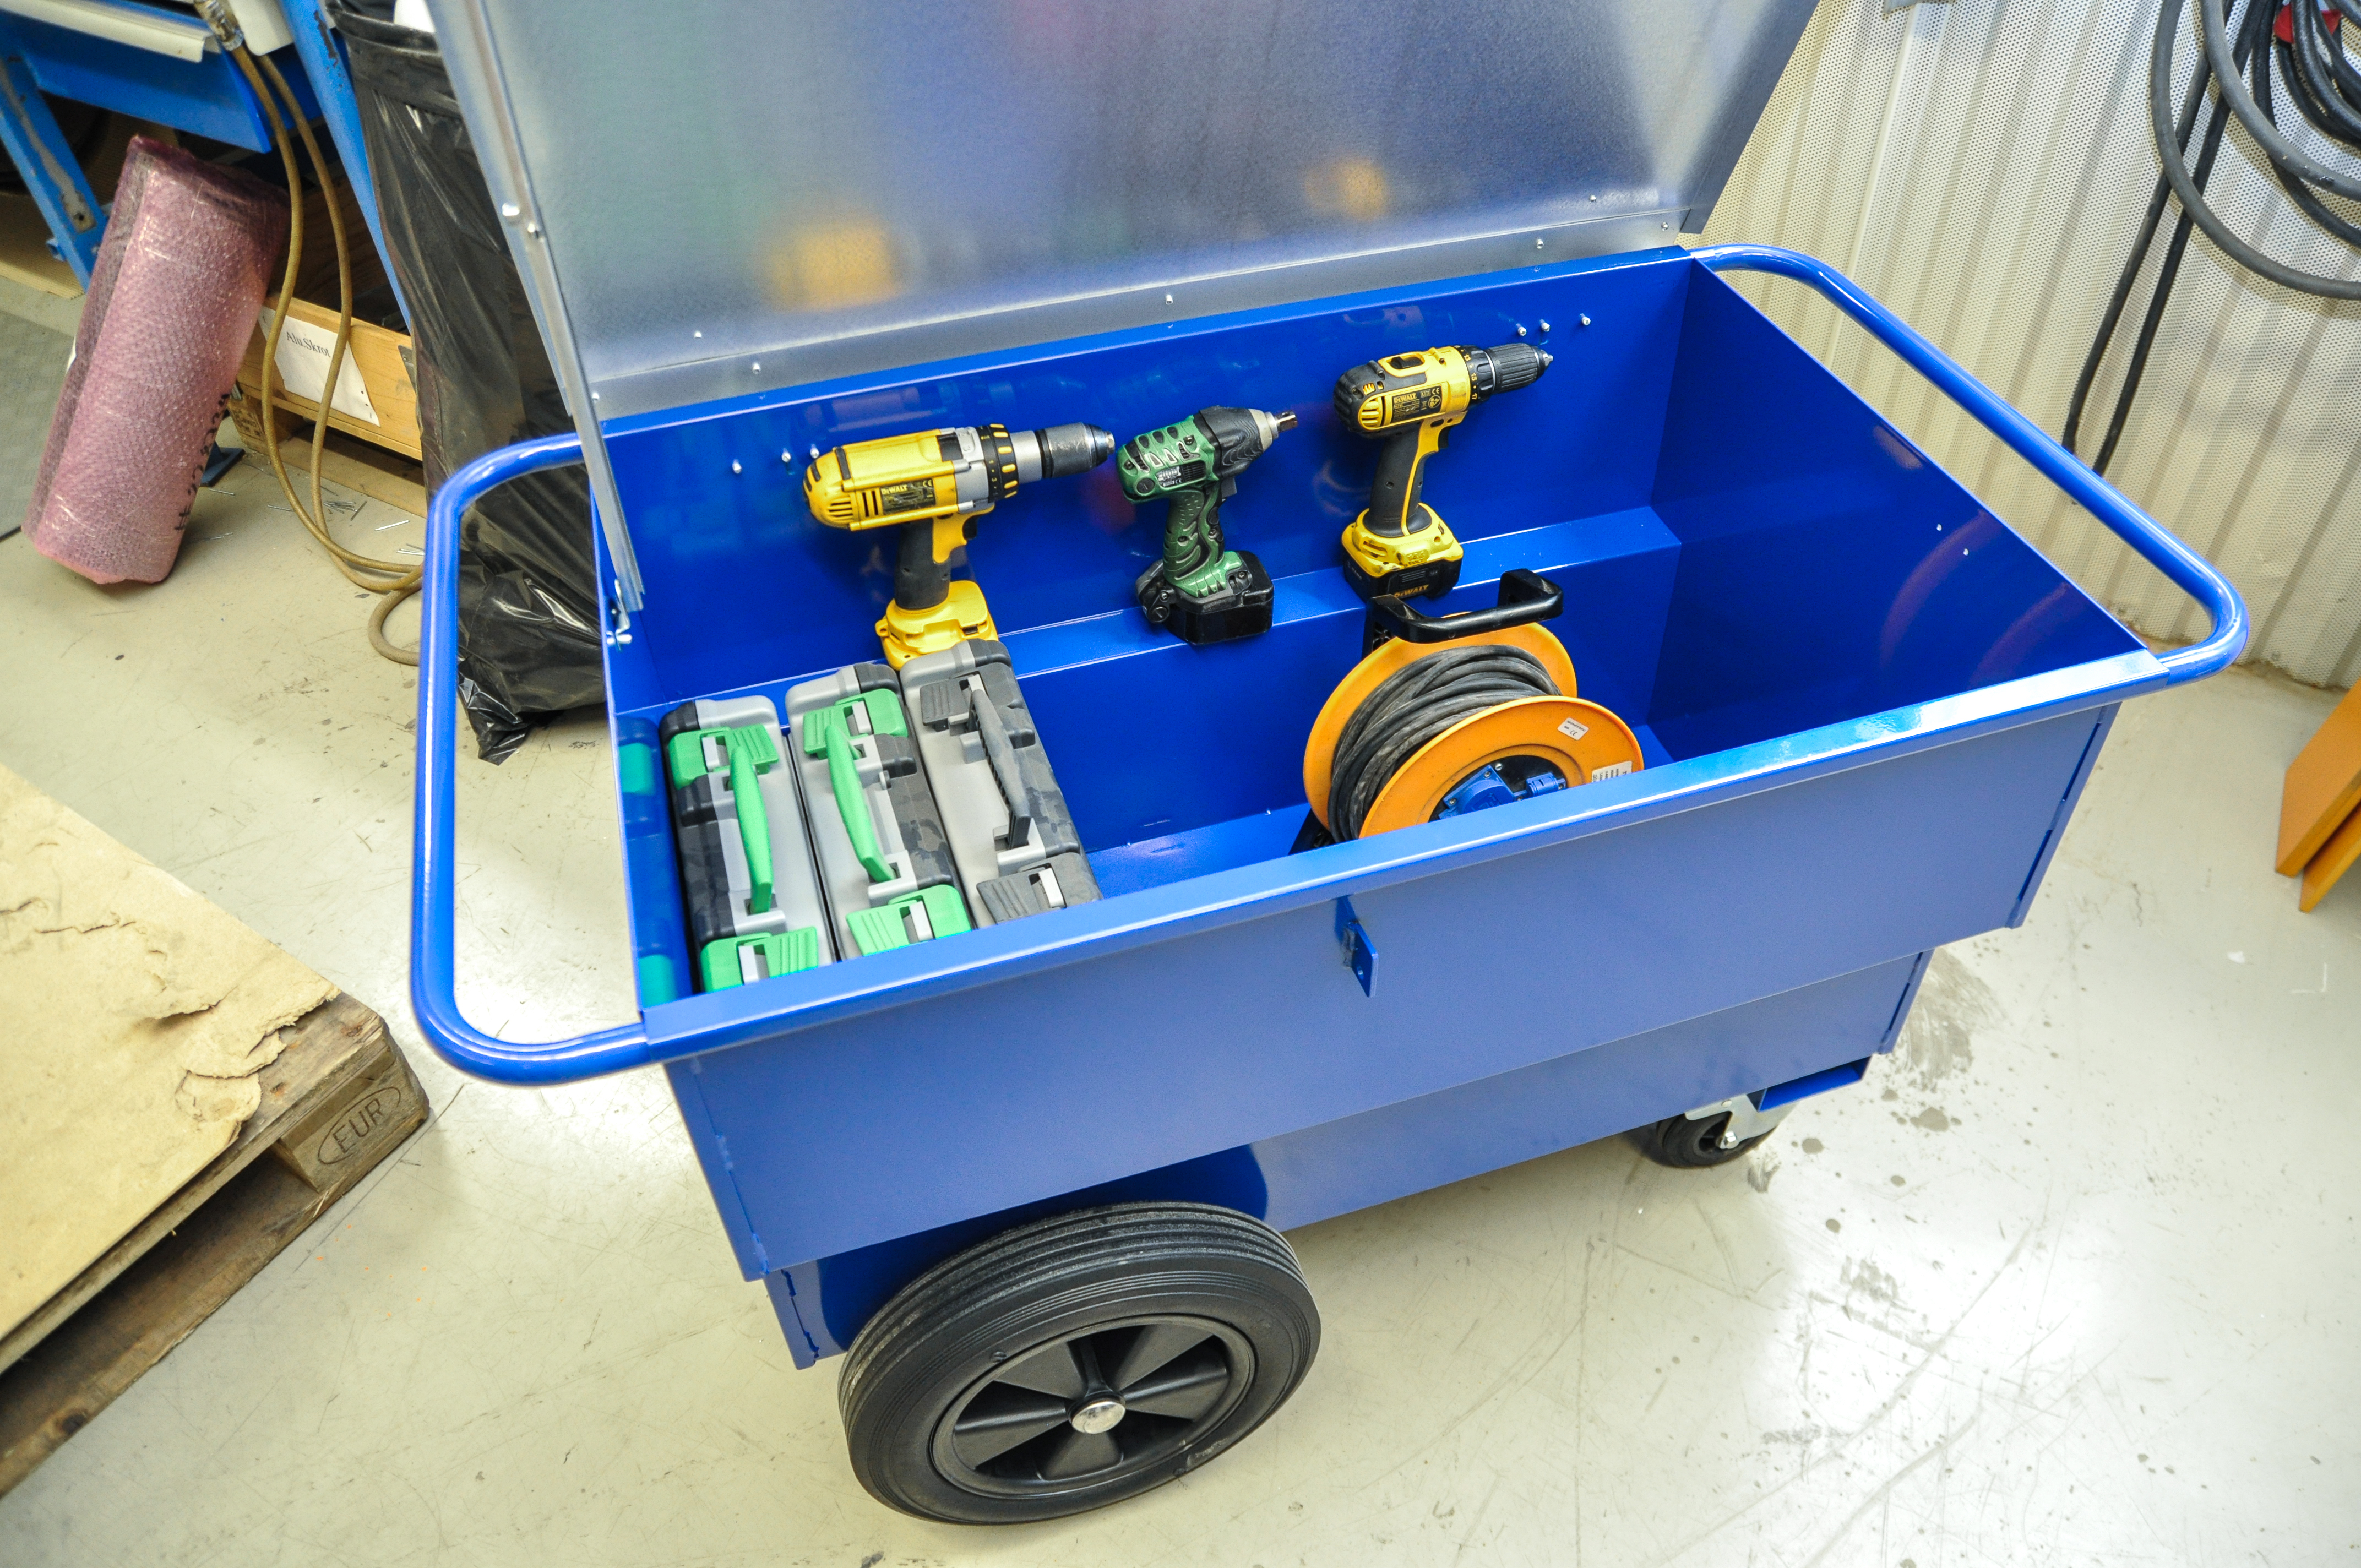 KM9199 | Tool trolley